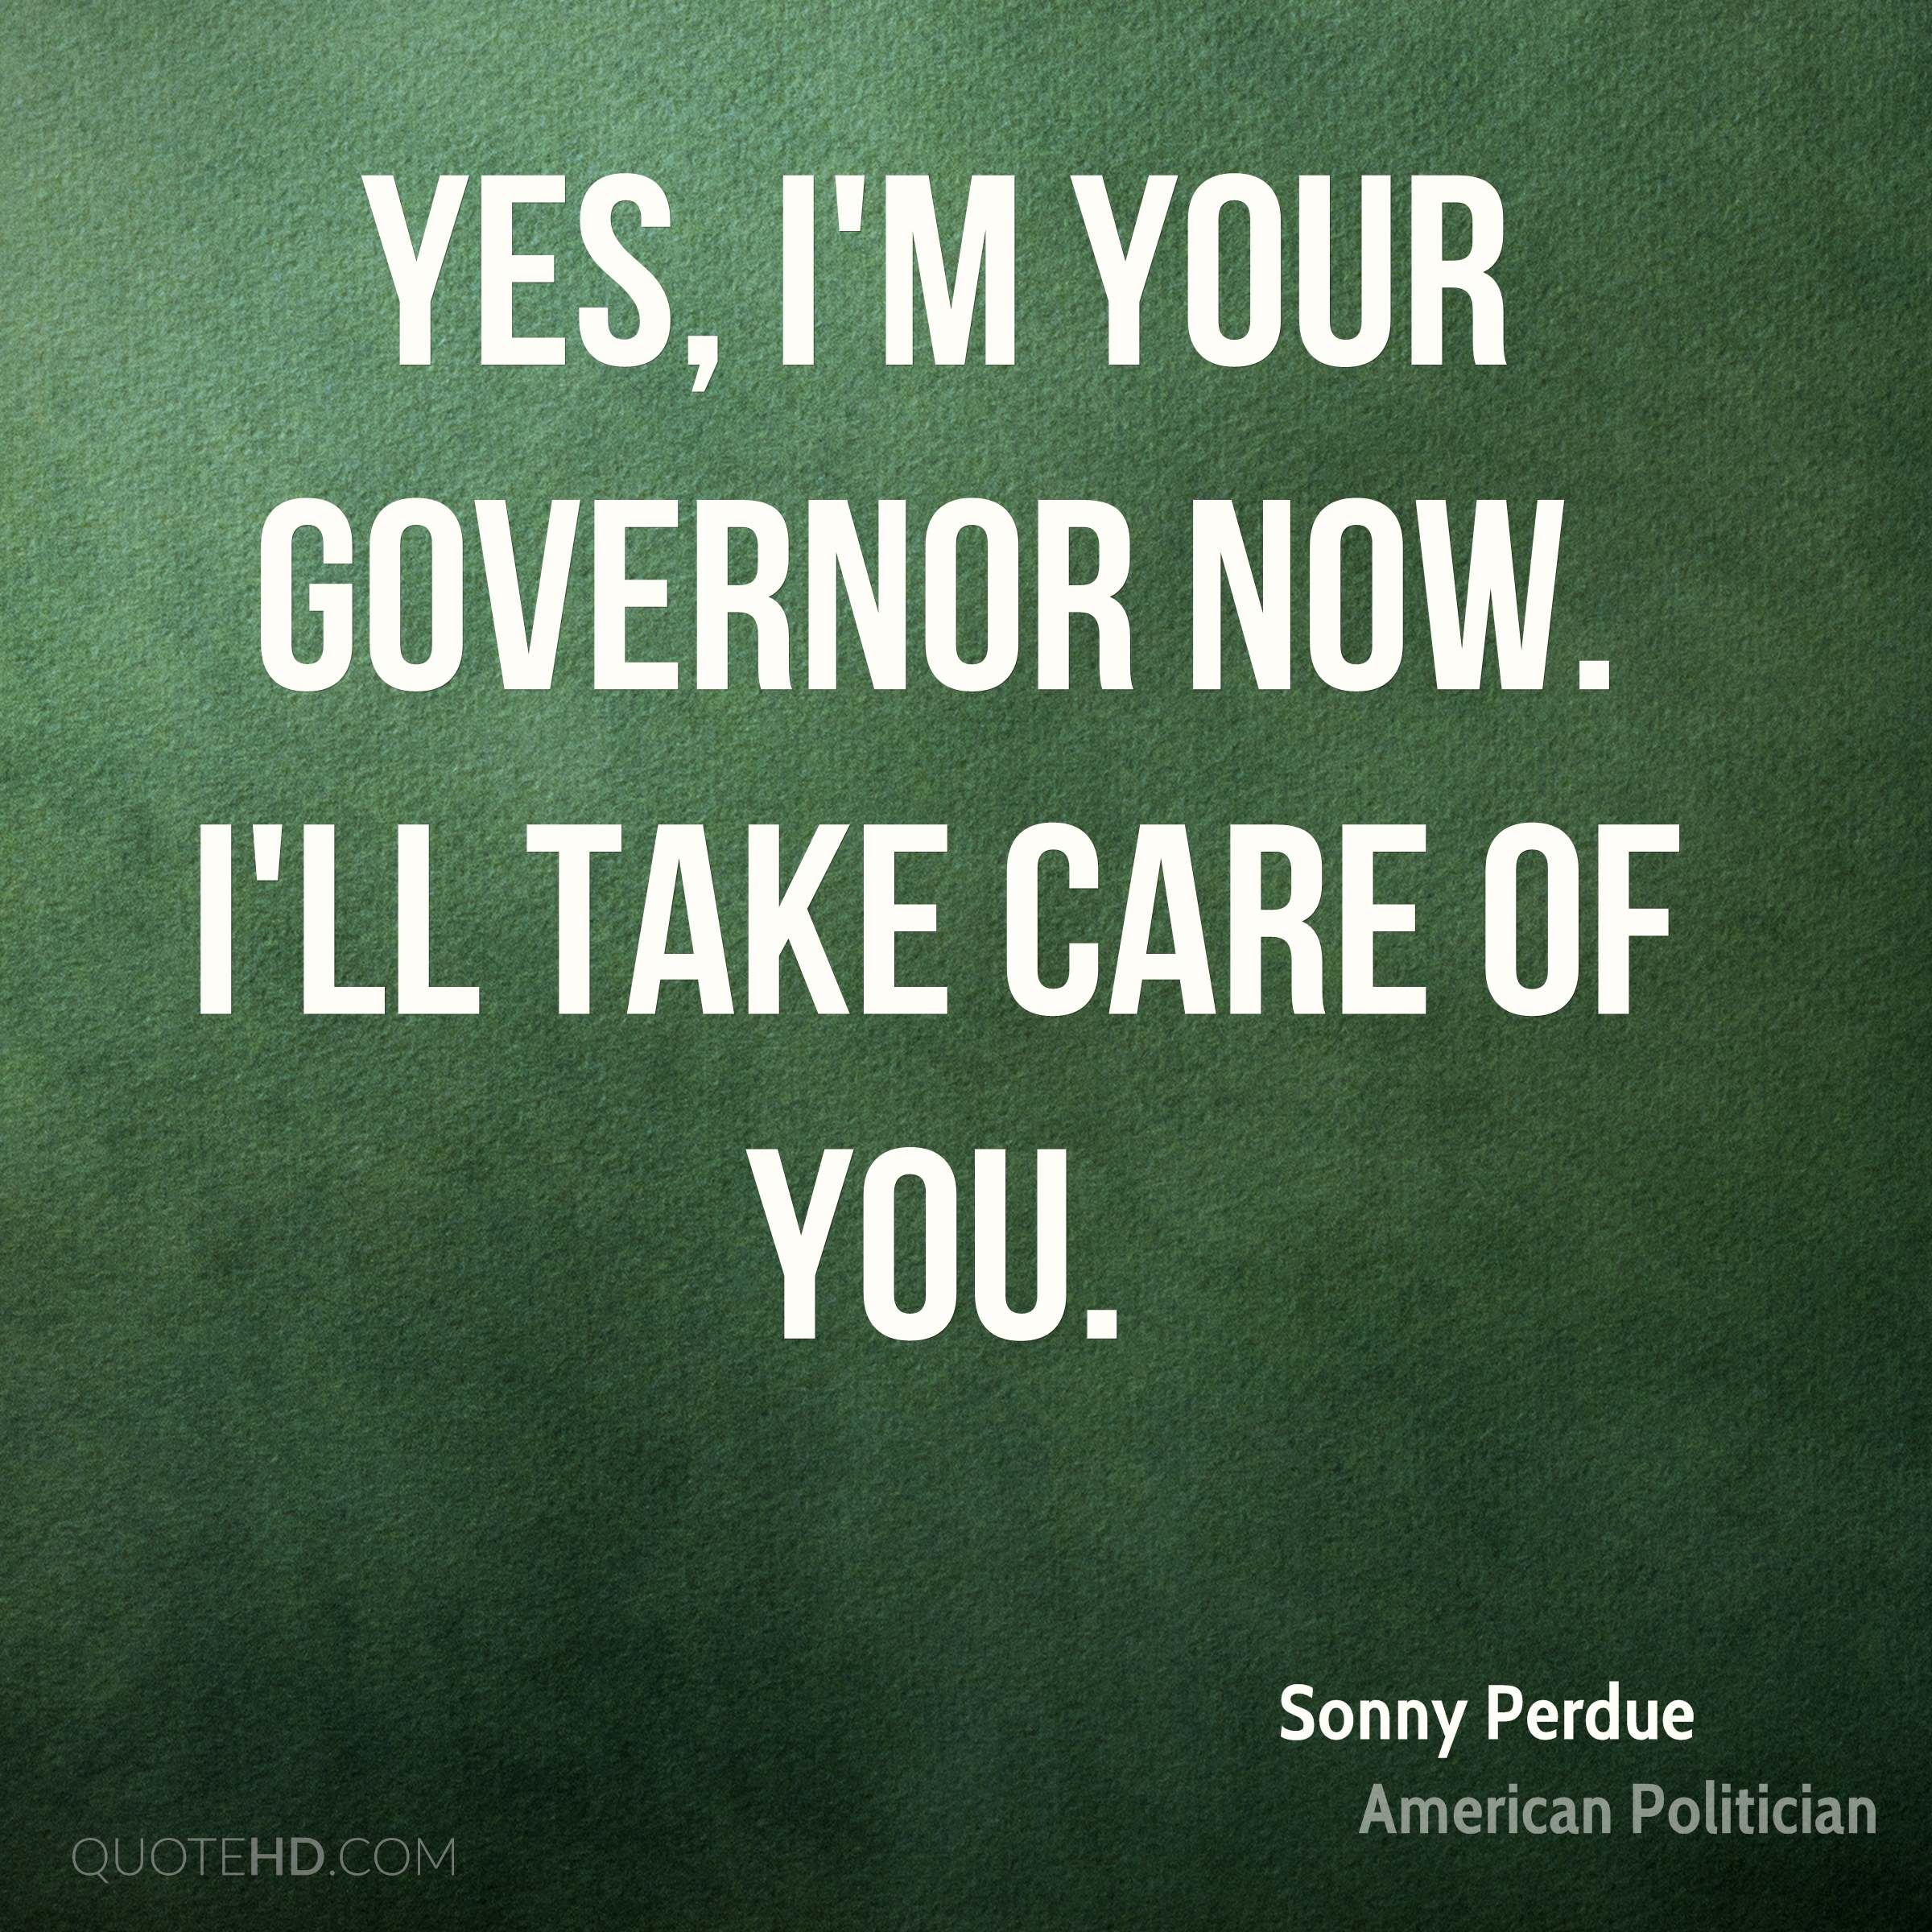 Yes, I'm your governor now. I'll take care of you.